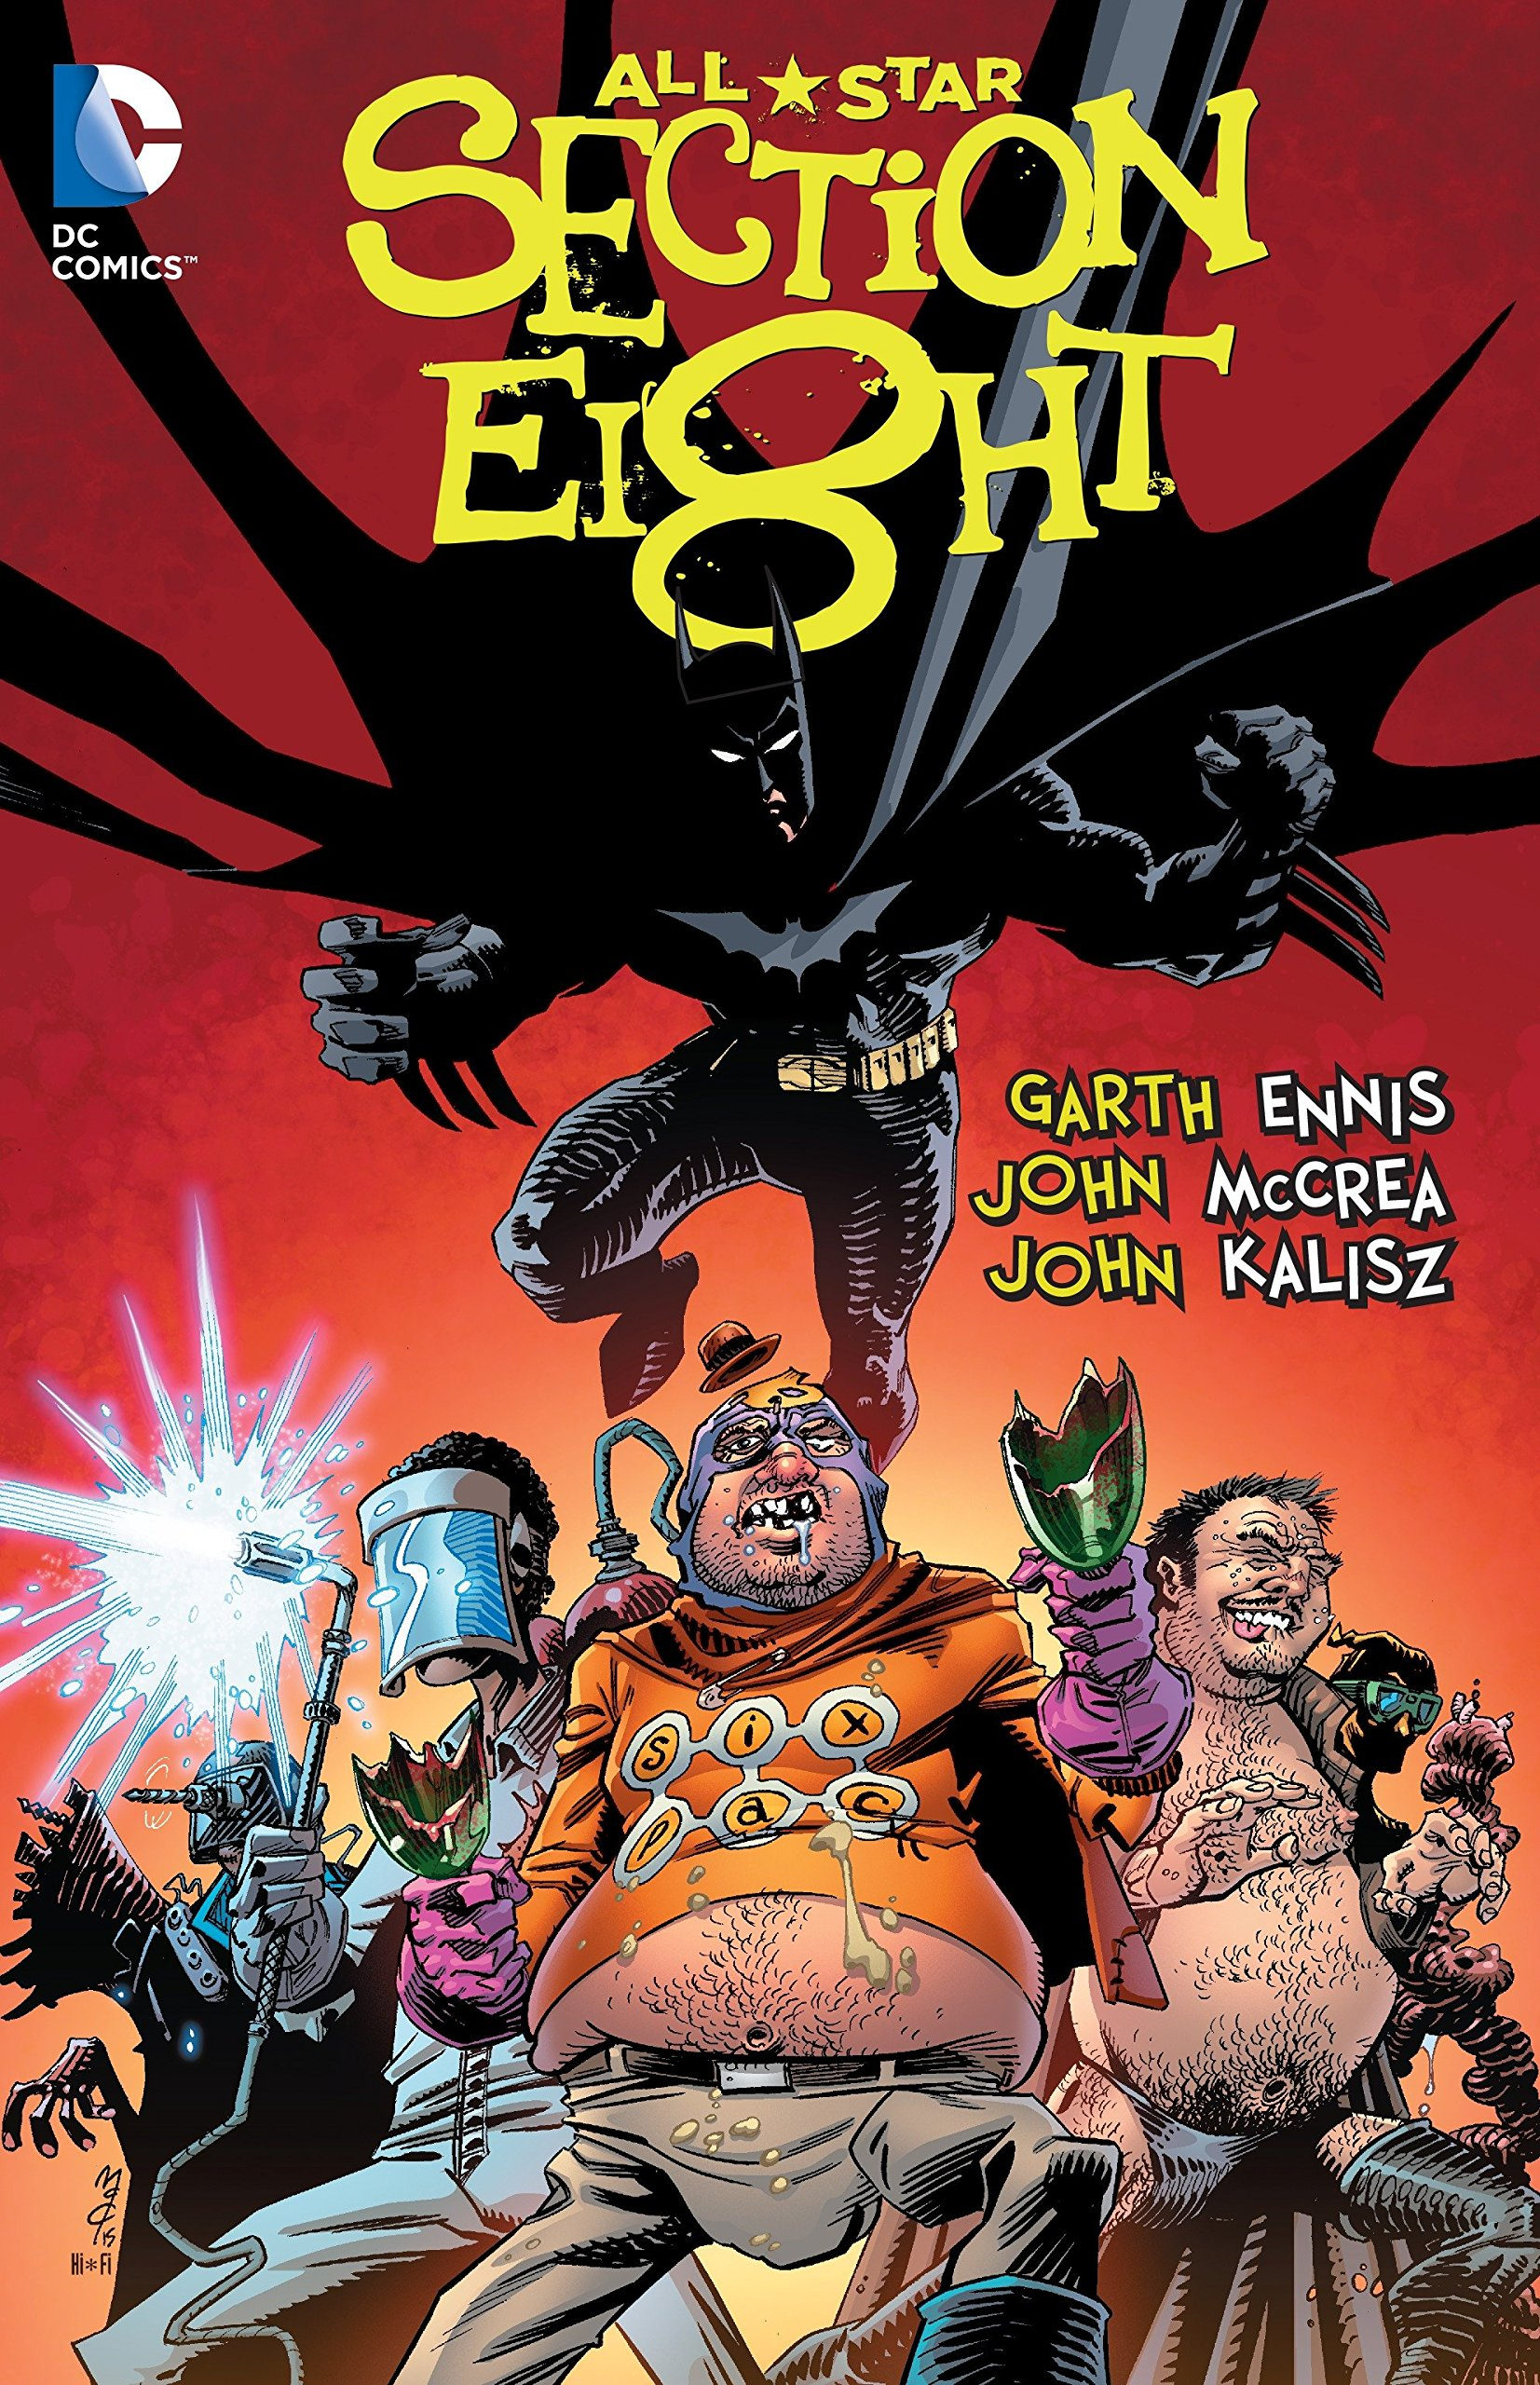 All-Star Section Eight ebook